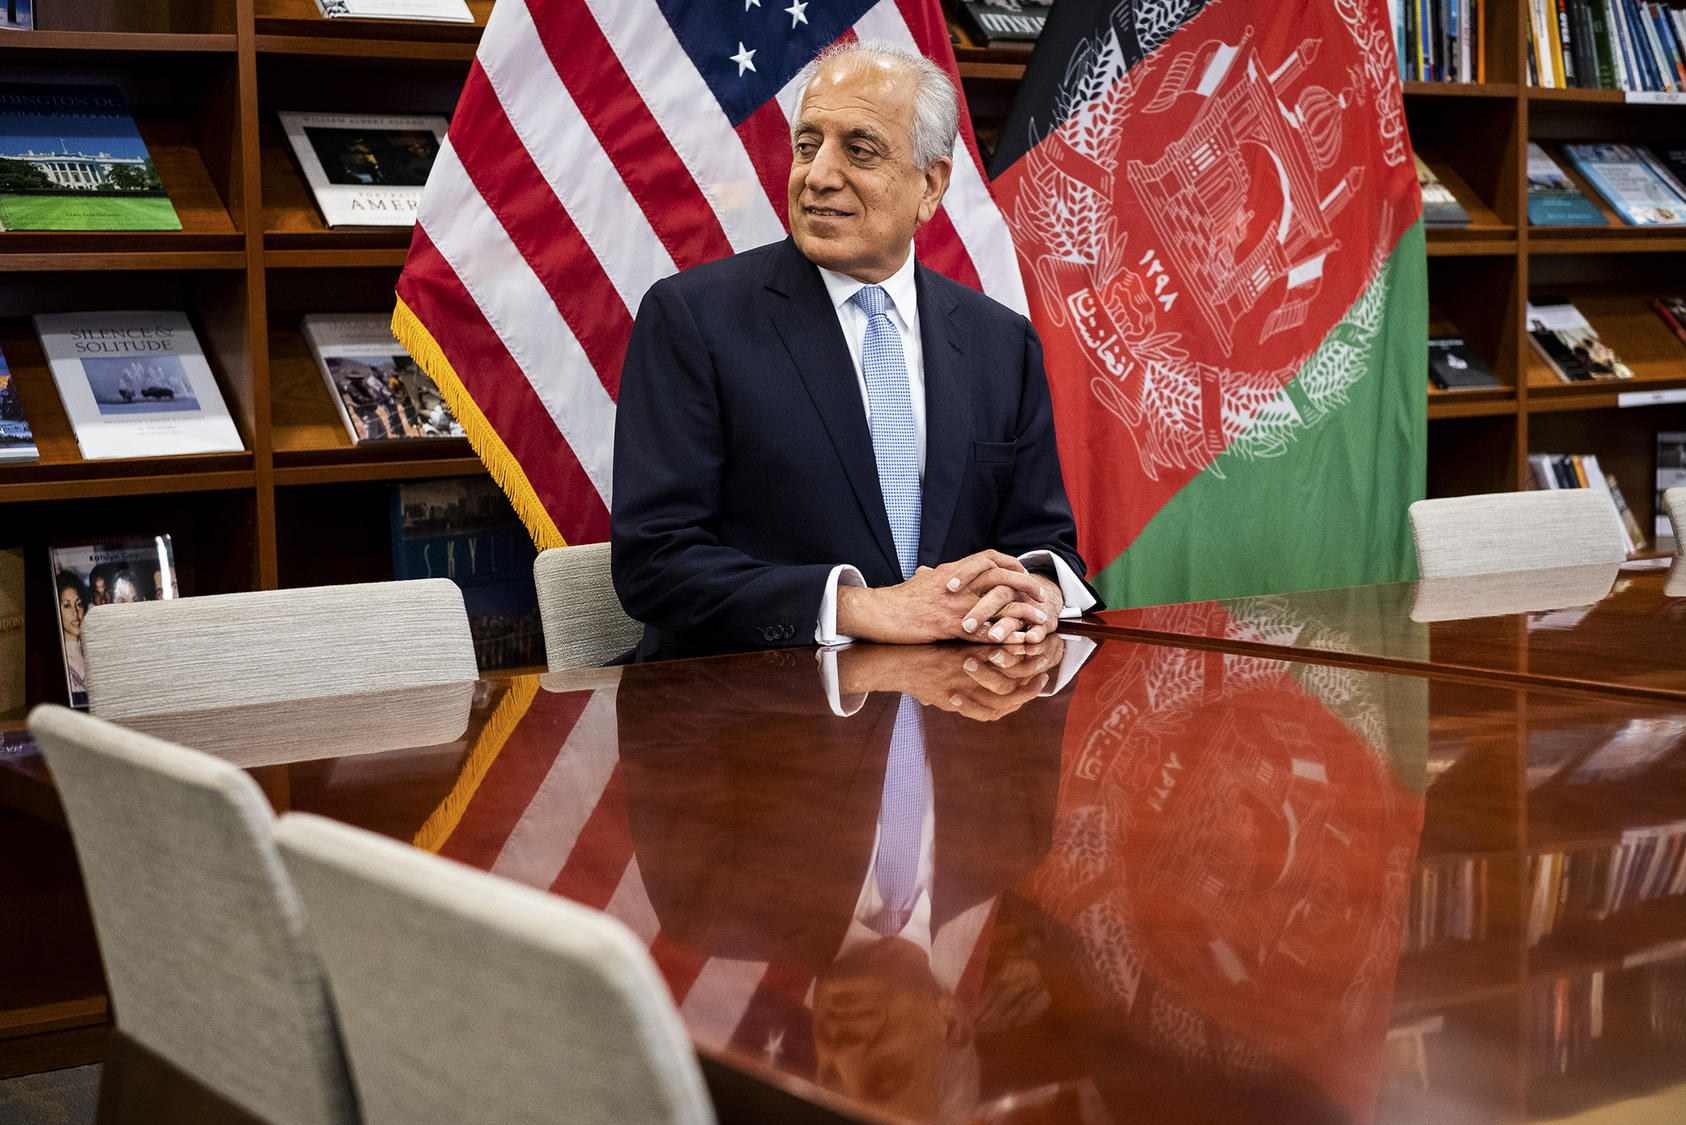 Zalmay Khalilzad, the special representative for Afghanistan reconciliation, at the United States Embassy in Kabul, Jan. 28, 2019. As American policy in Afghanistan seems bent more than ever on making a deal with Taliban insurgents to withdraw American troops from the country after nearly two decades of war, Khalilzad's diplomacy is taking priority. (Jim Huylebroek/The New York Times)